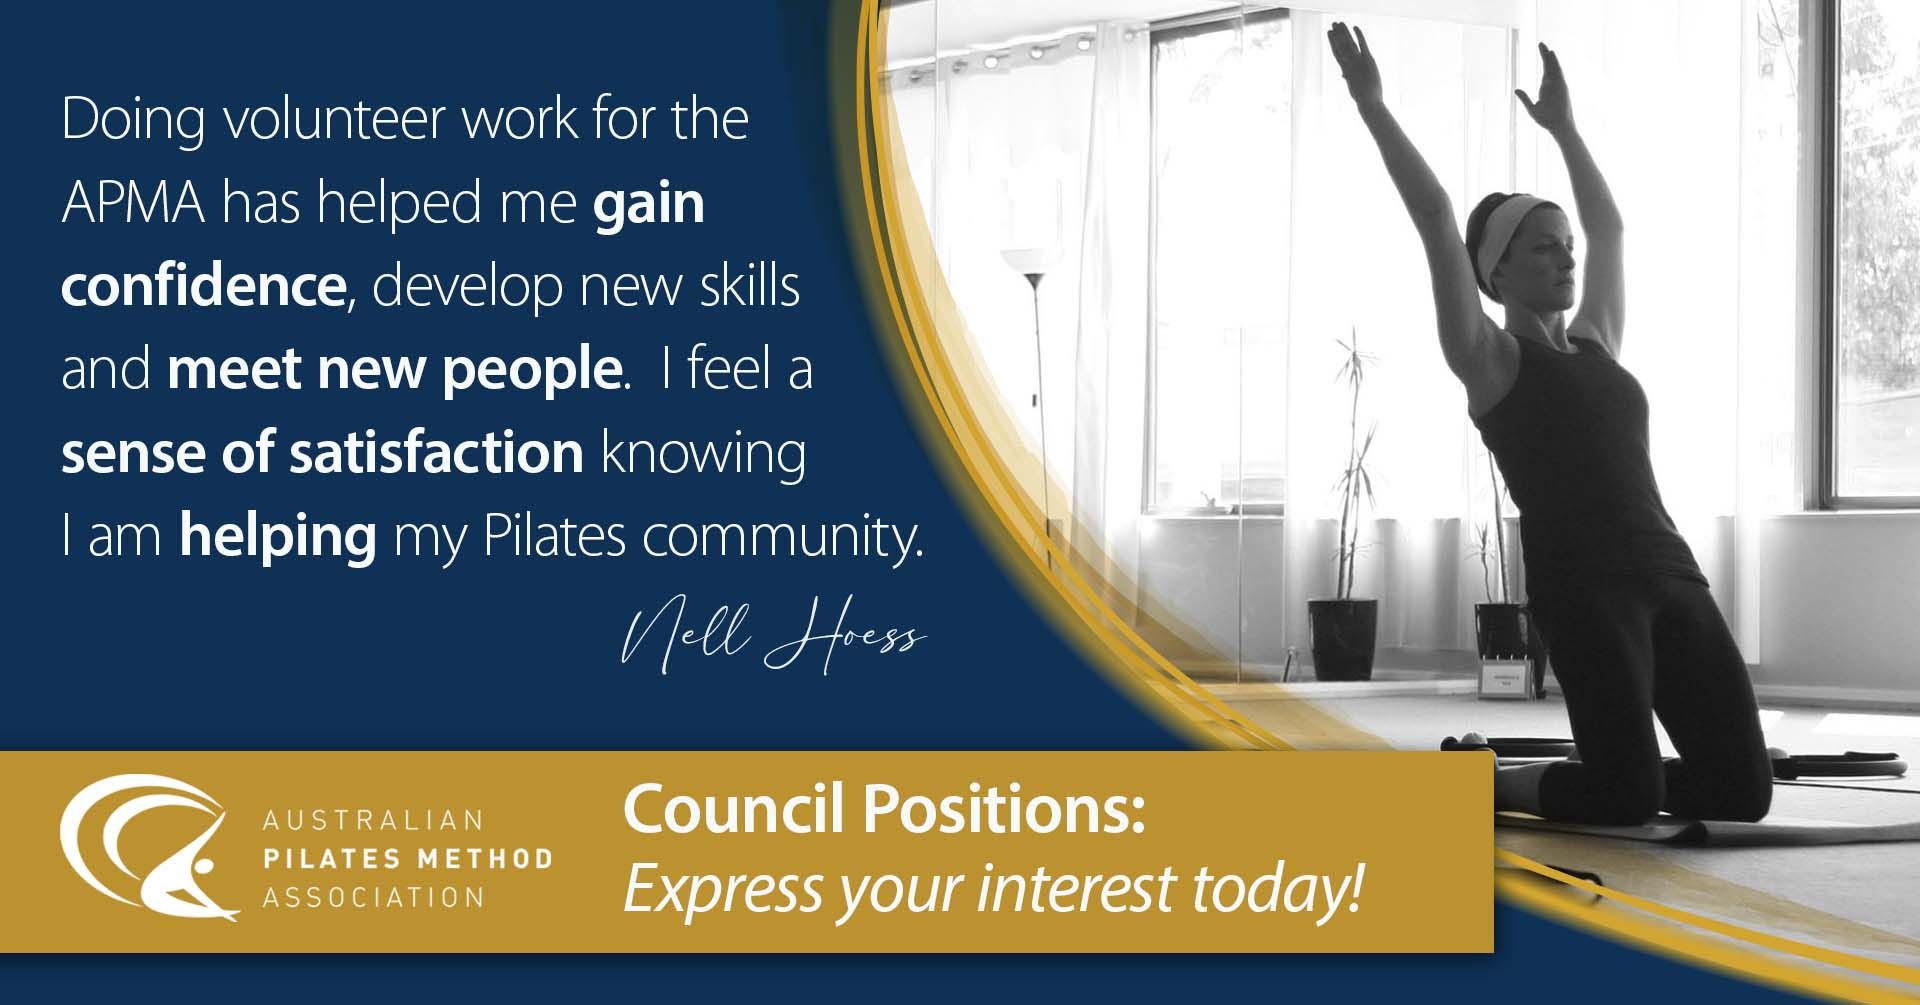 Council Position - Express your interest today!